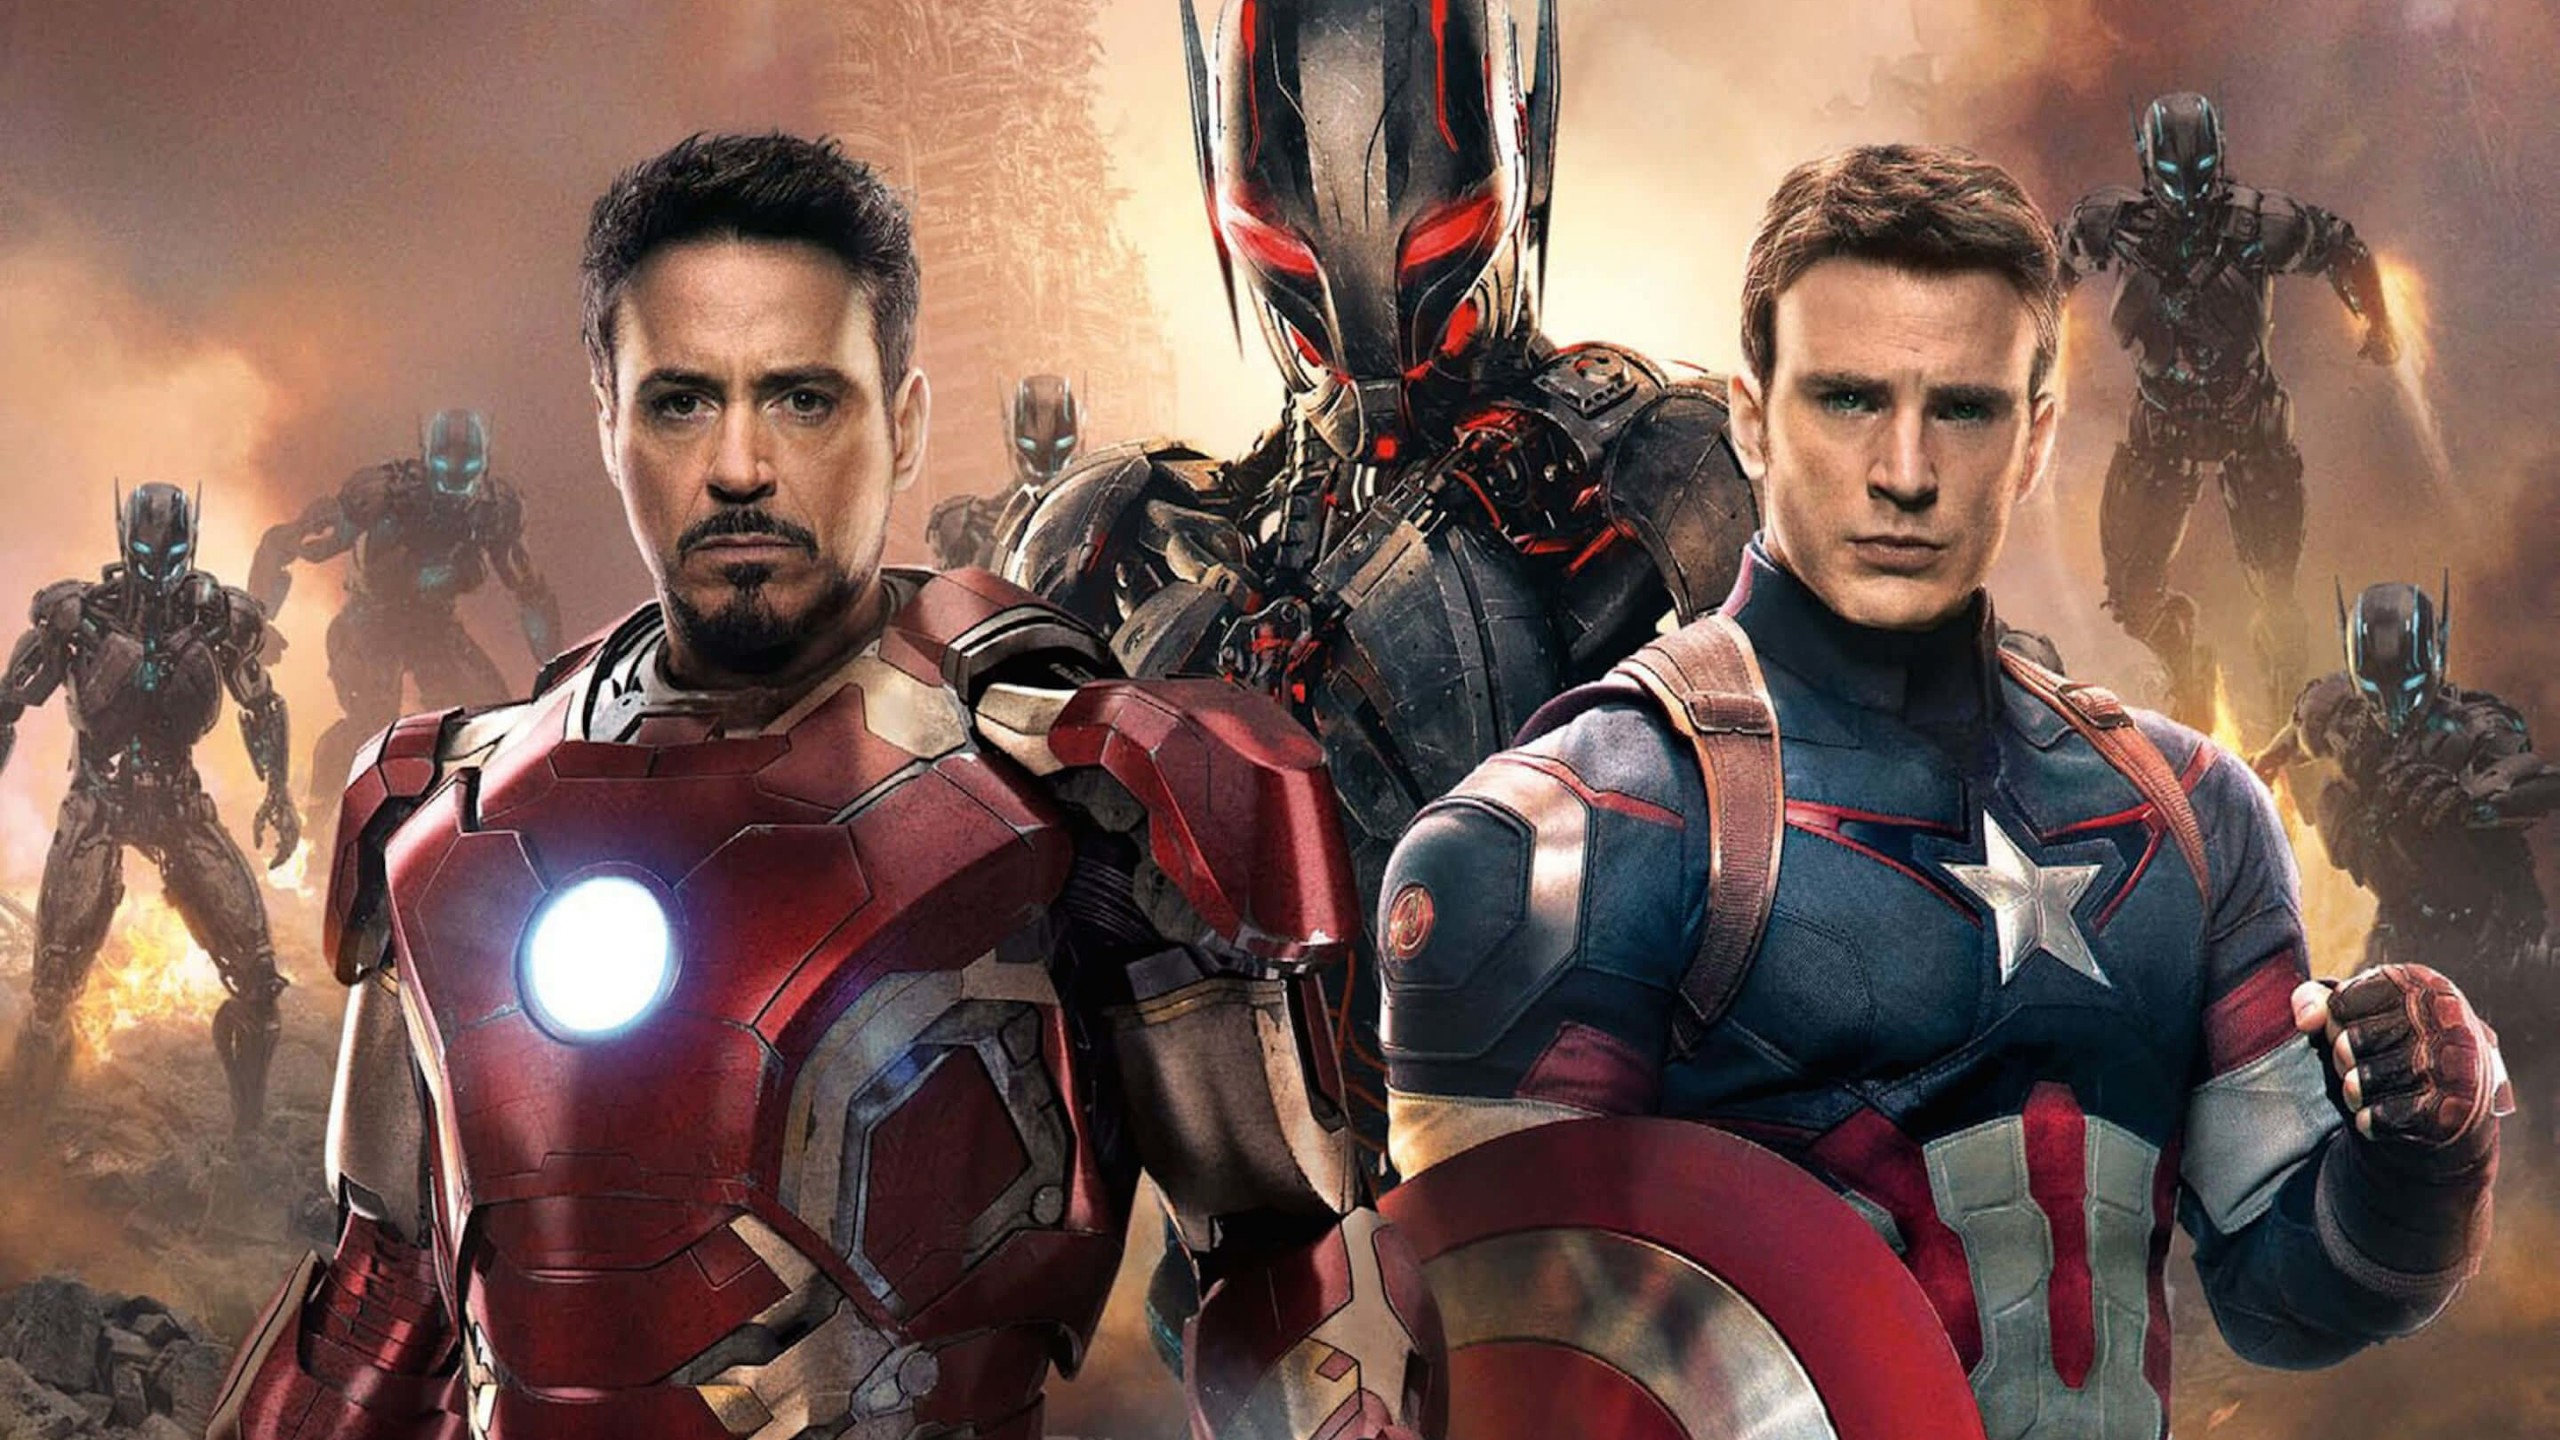 The Avengers: Age of Ultron - Iron Man and Captain America Wallpaper for Desktop 2560x1440